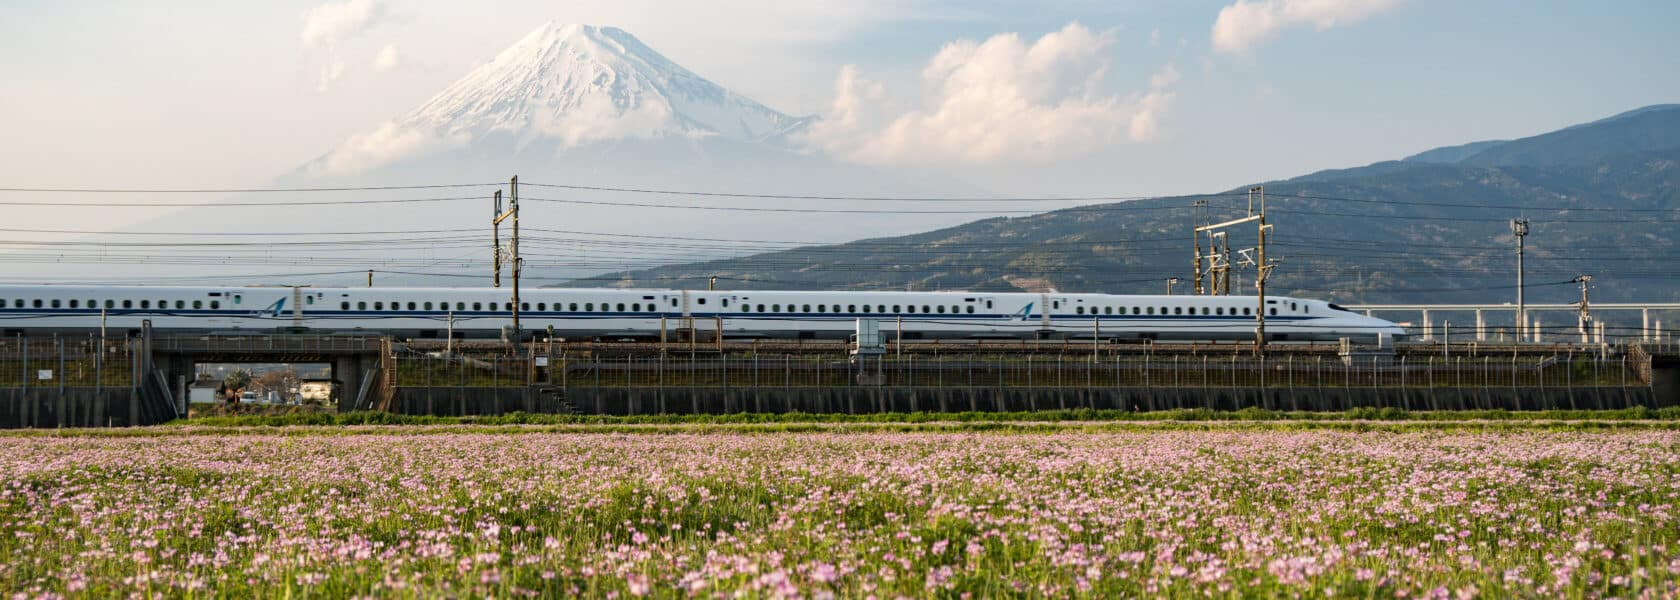 The Best Train Journeys In The World Part Two